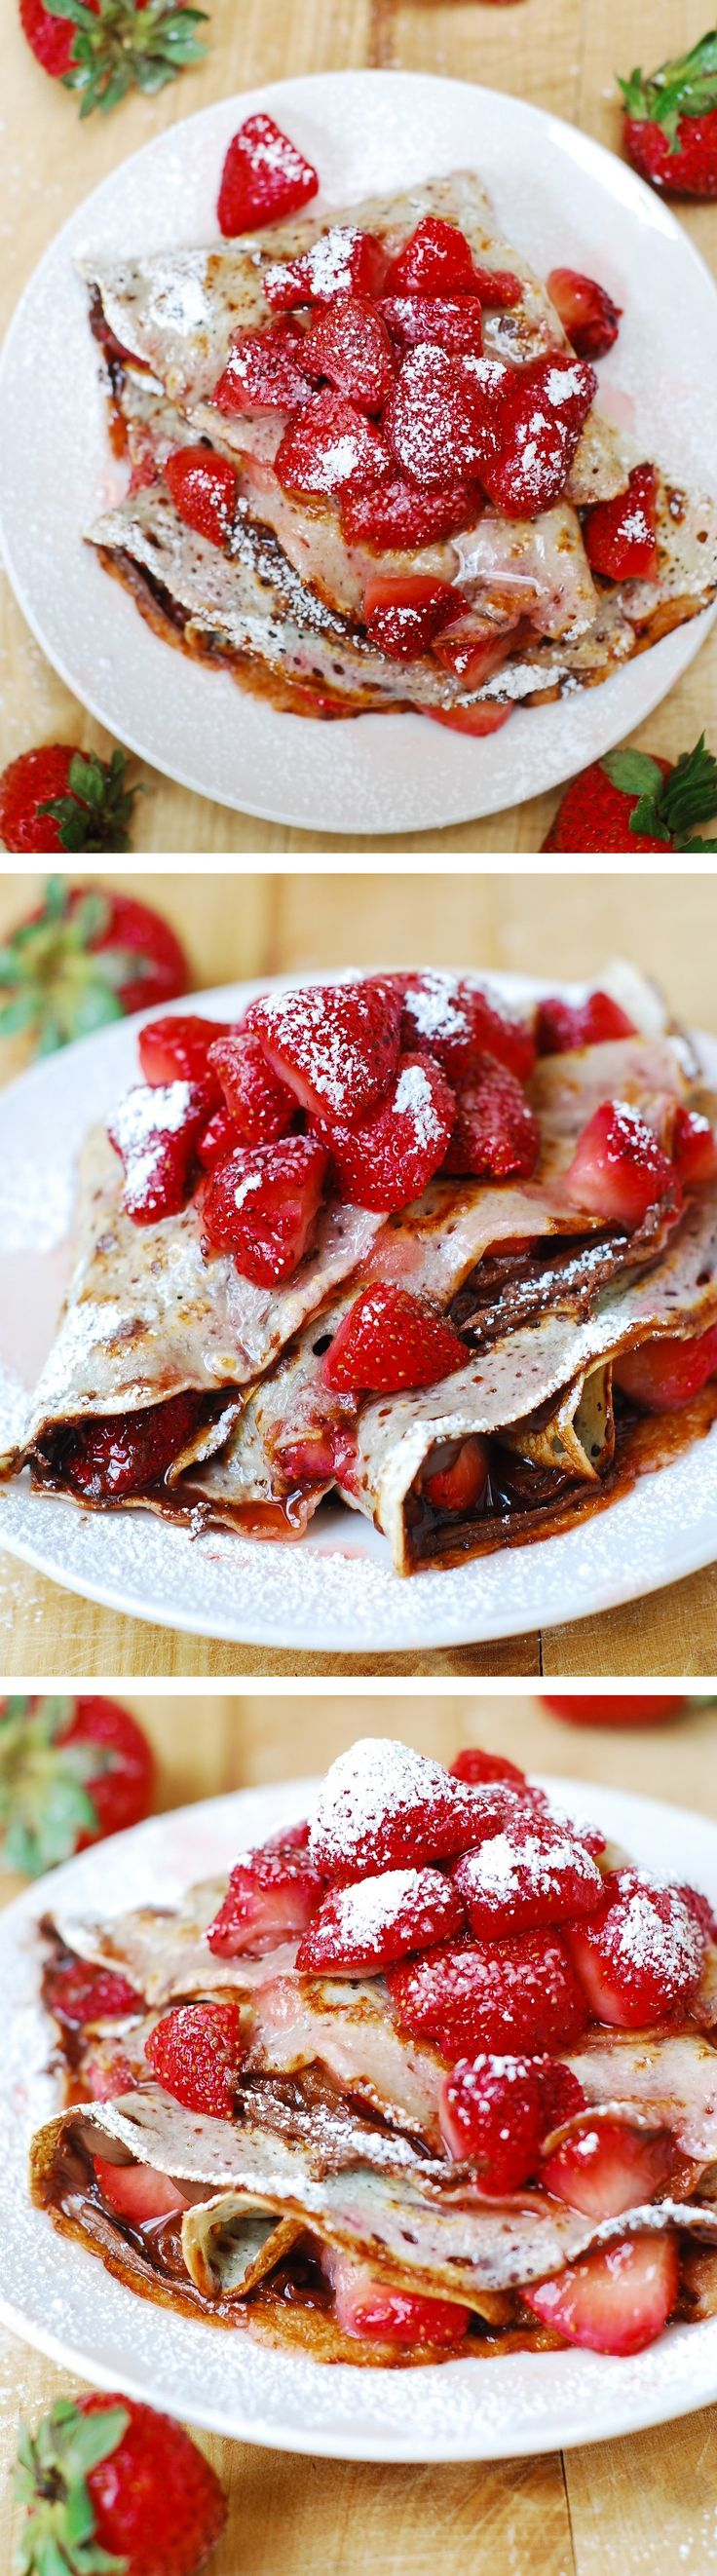 Strawberry & Nutella crepes sprinkled with powdered sugar! Great Summer time brunch or dessert! #chocolate #berry_crepes #Nutella_recipes